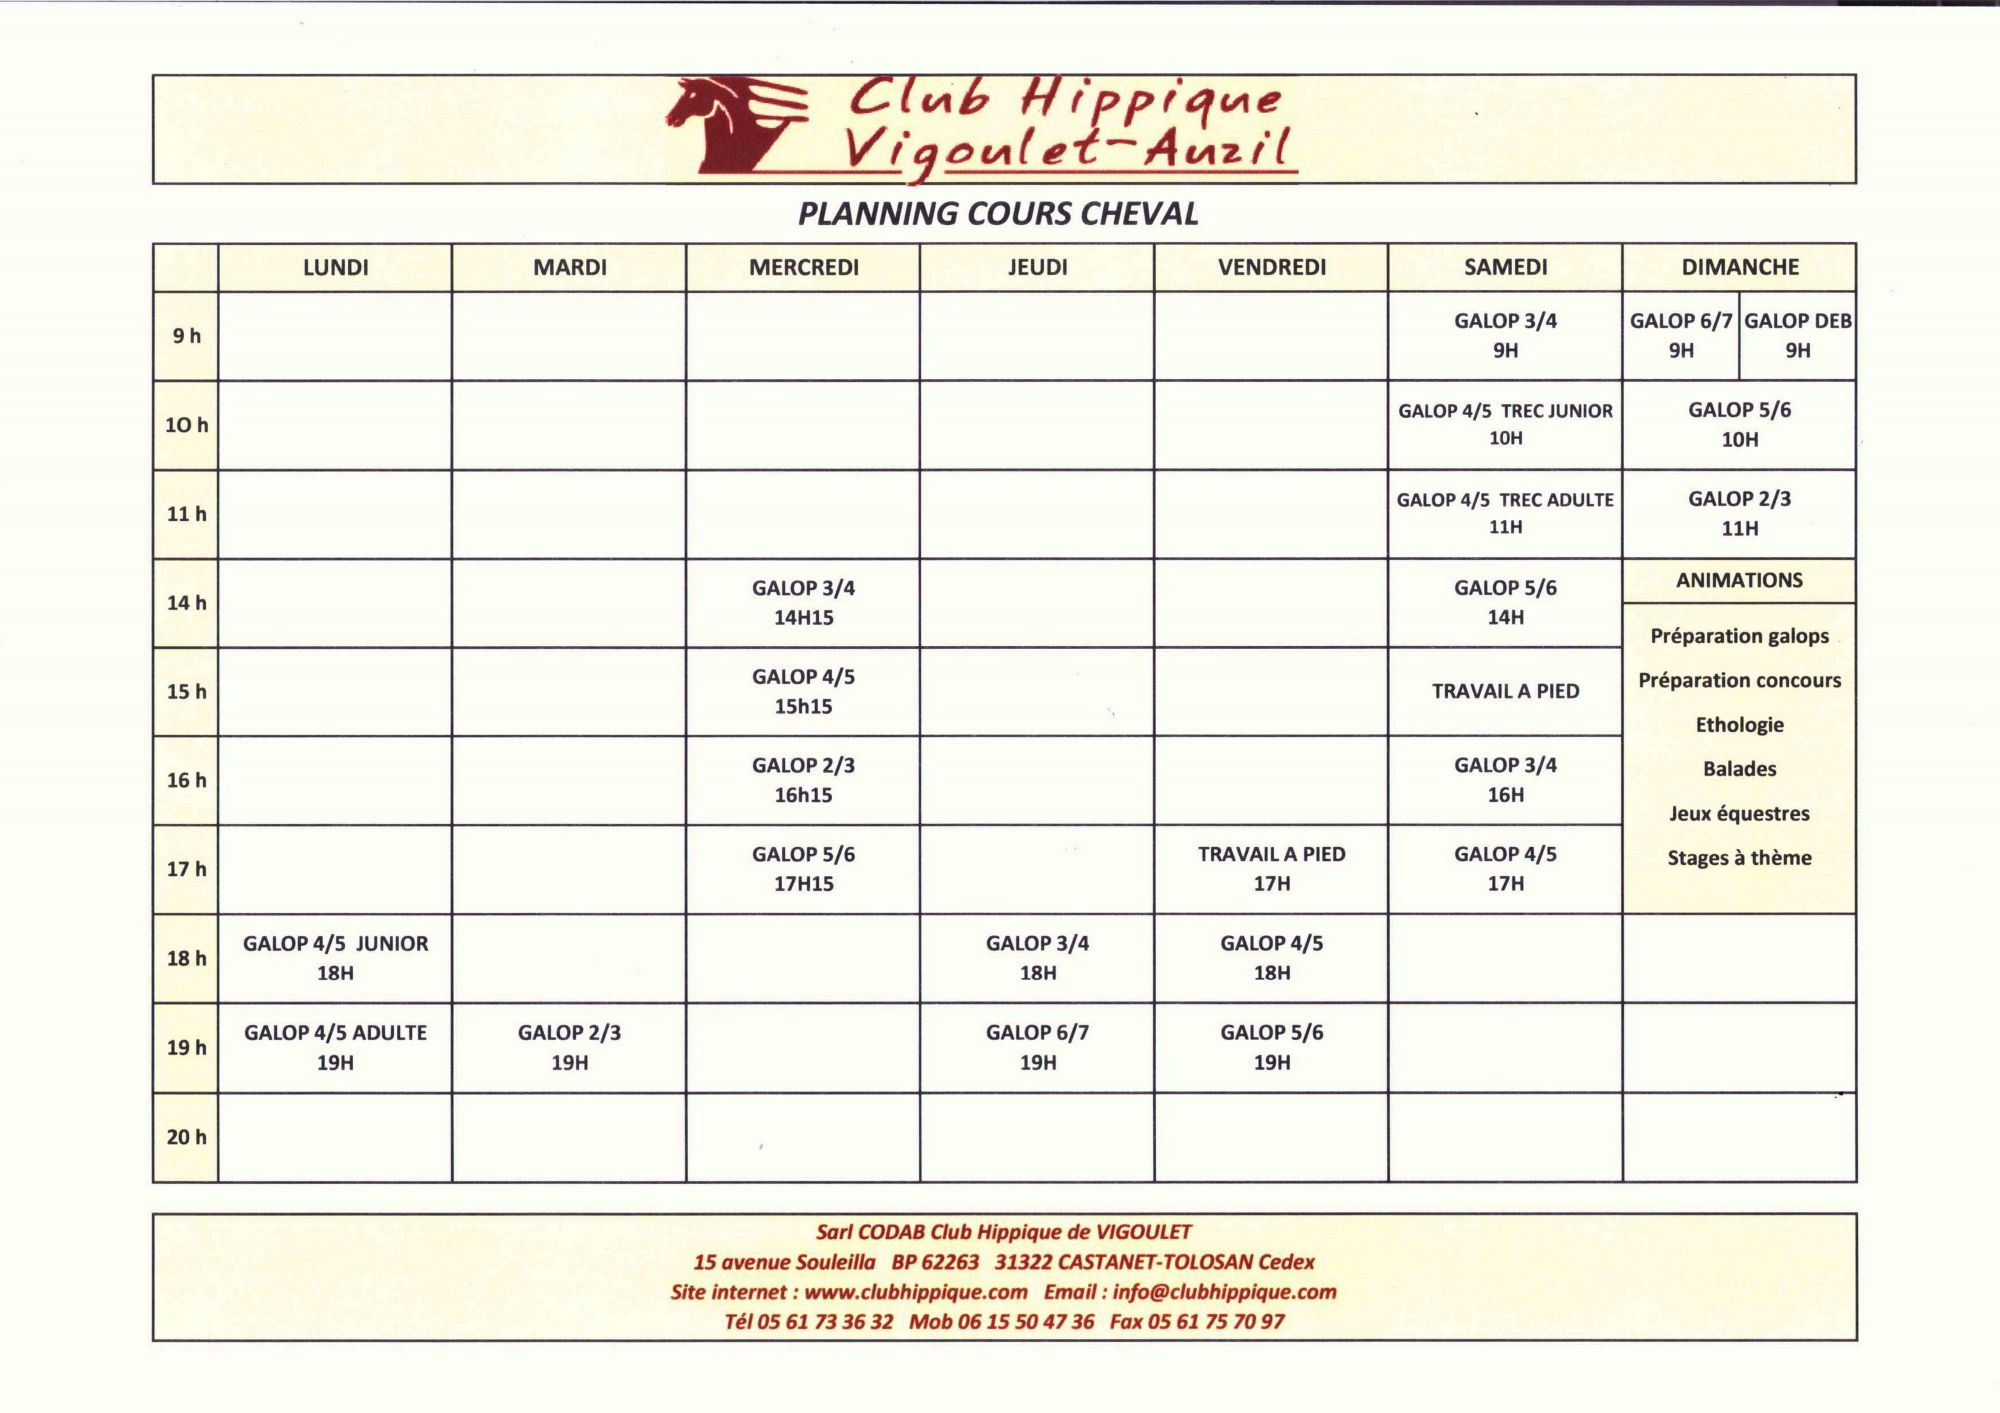 horaires-cours-cheval